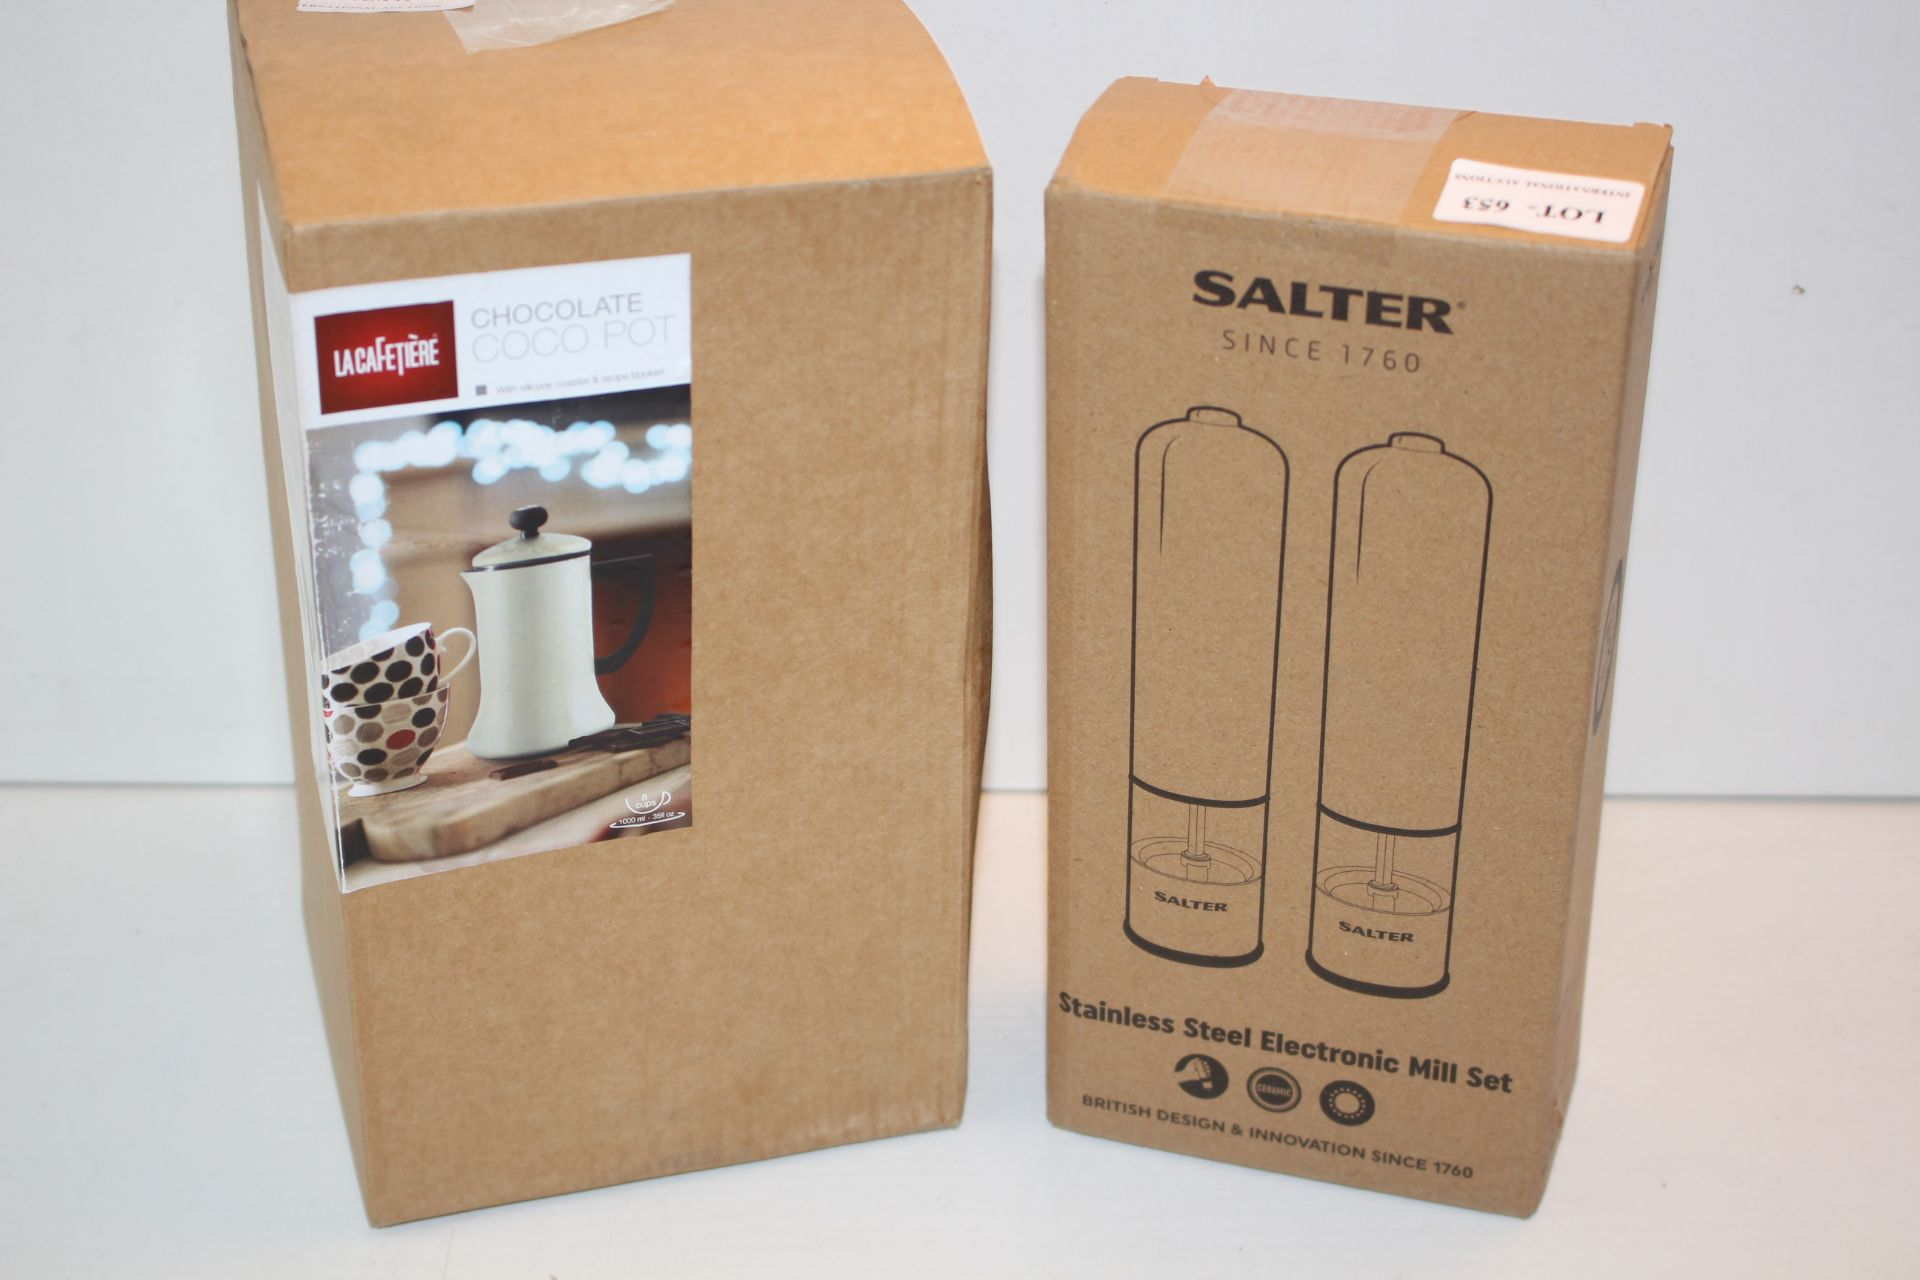 X2 BOXED ITEMS INCLUDING SALTER MILL SET AND CHOCOLATE COCO POTCondition ReportAppraisal Available